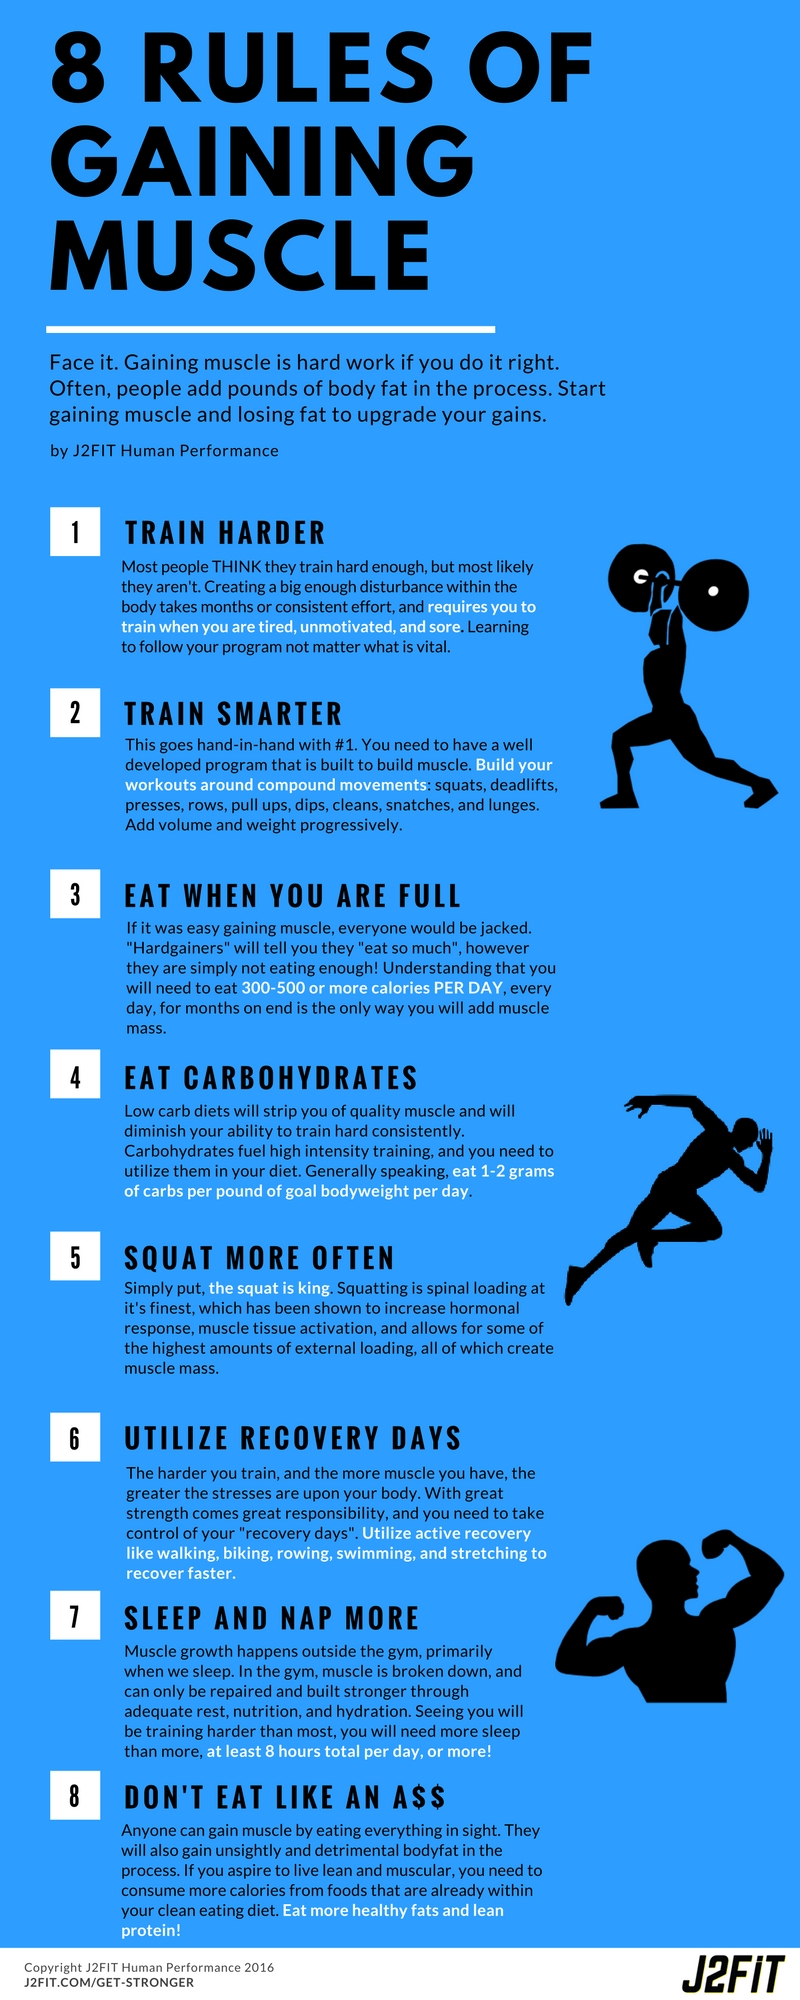 J2FIT 8 Rules of Gaining Muscle